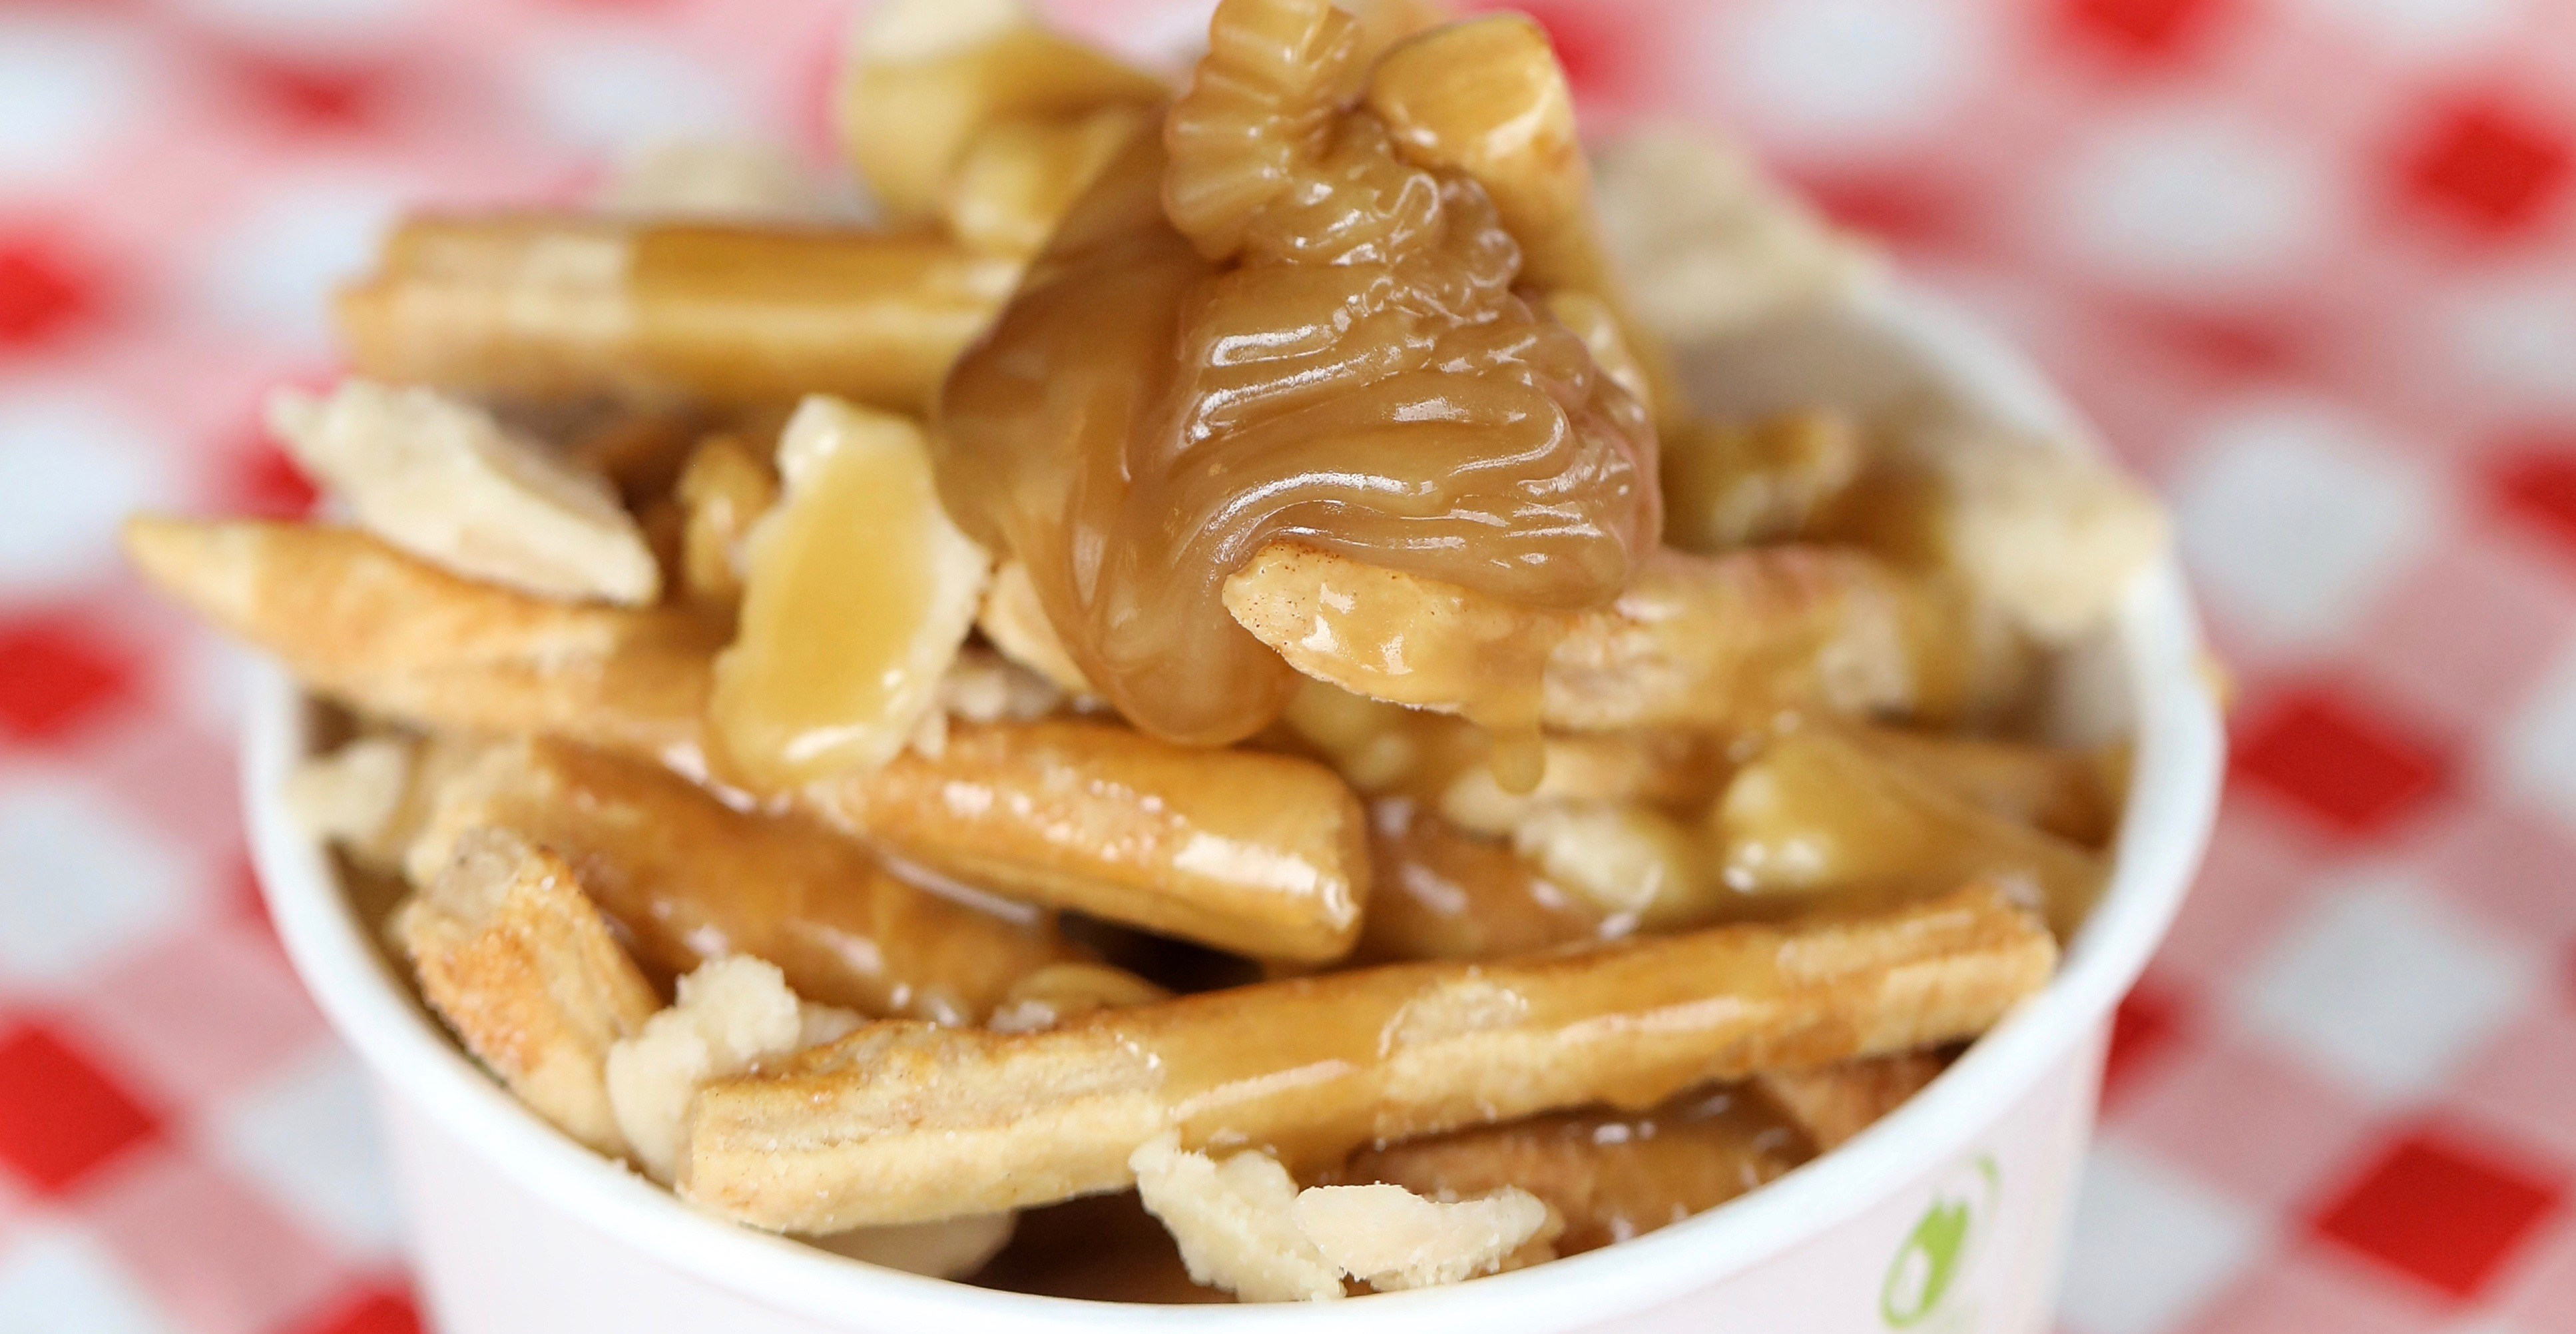 The Pie Hole is making a 'pie poutine' for the long weekend (PHOTOS)